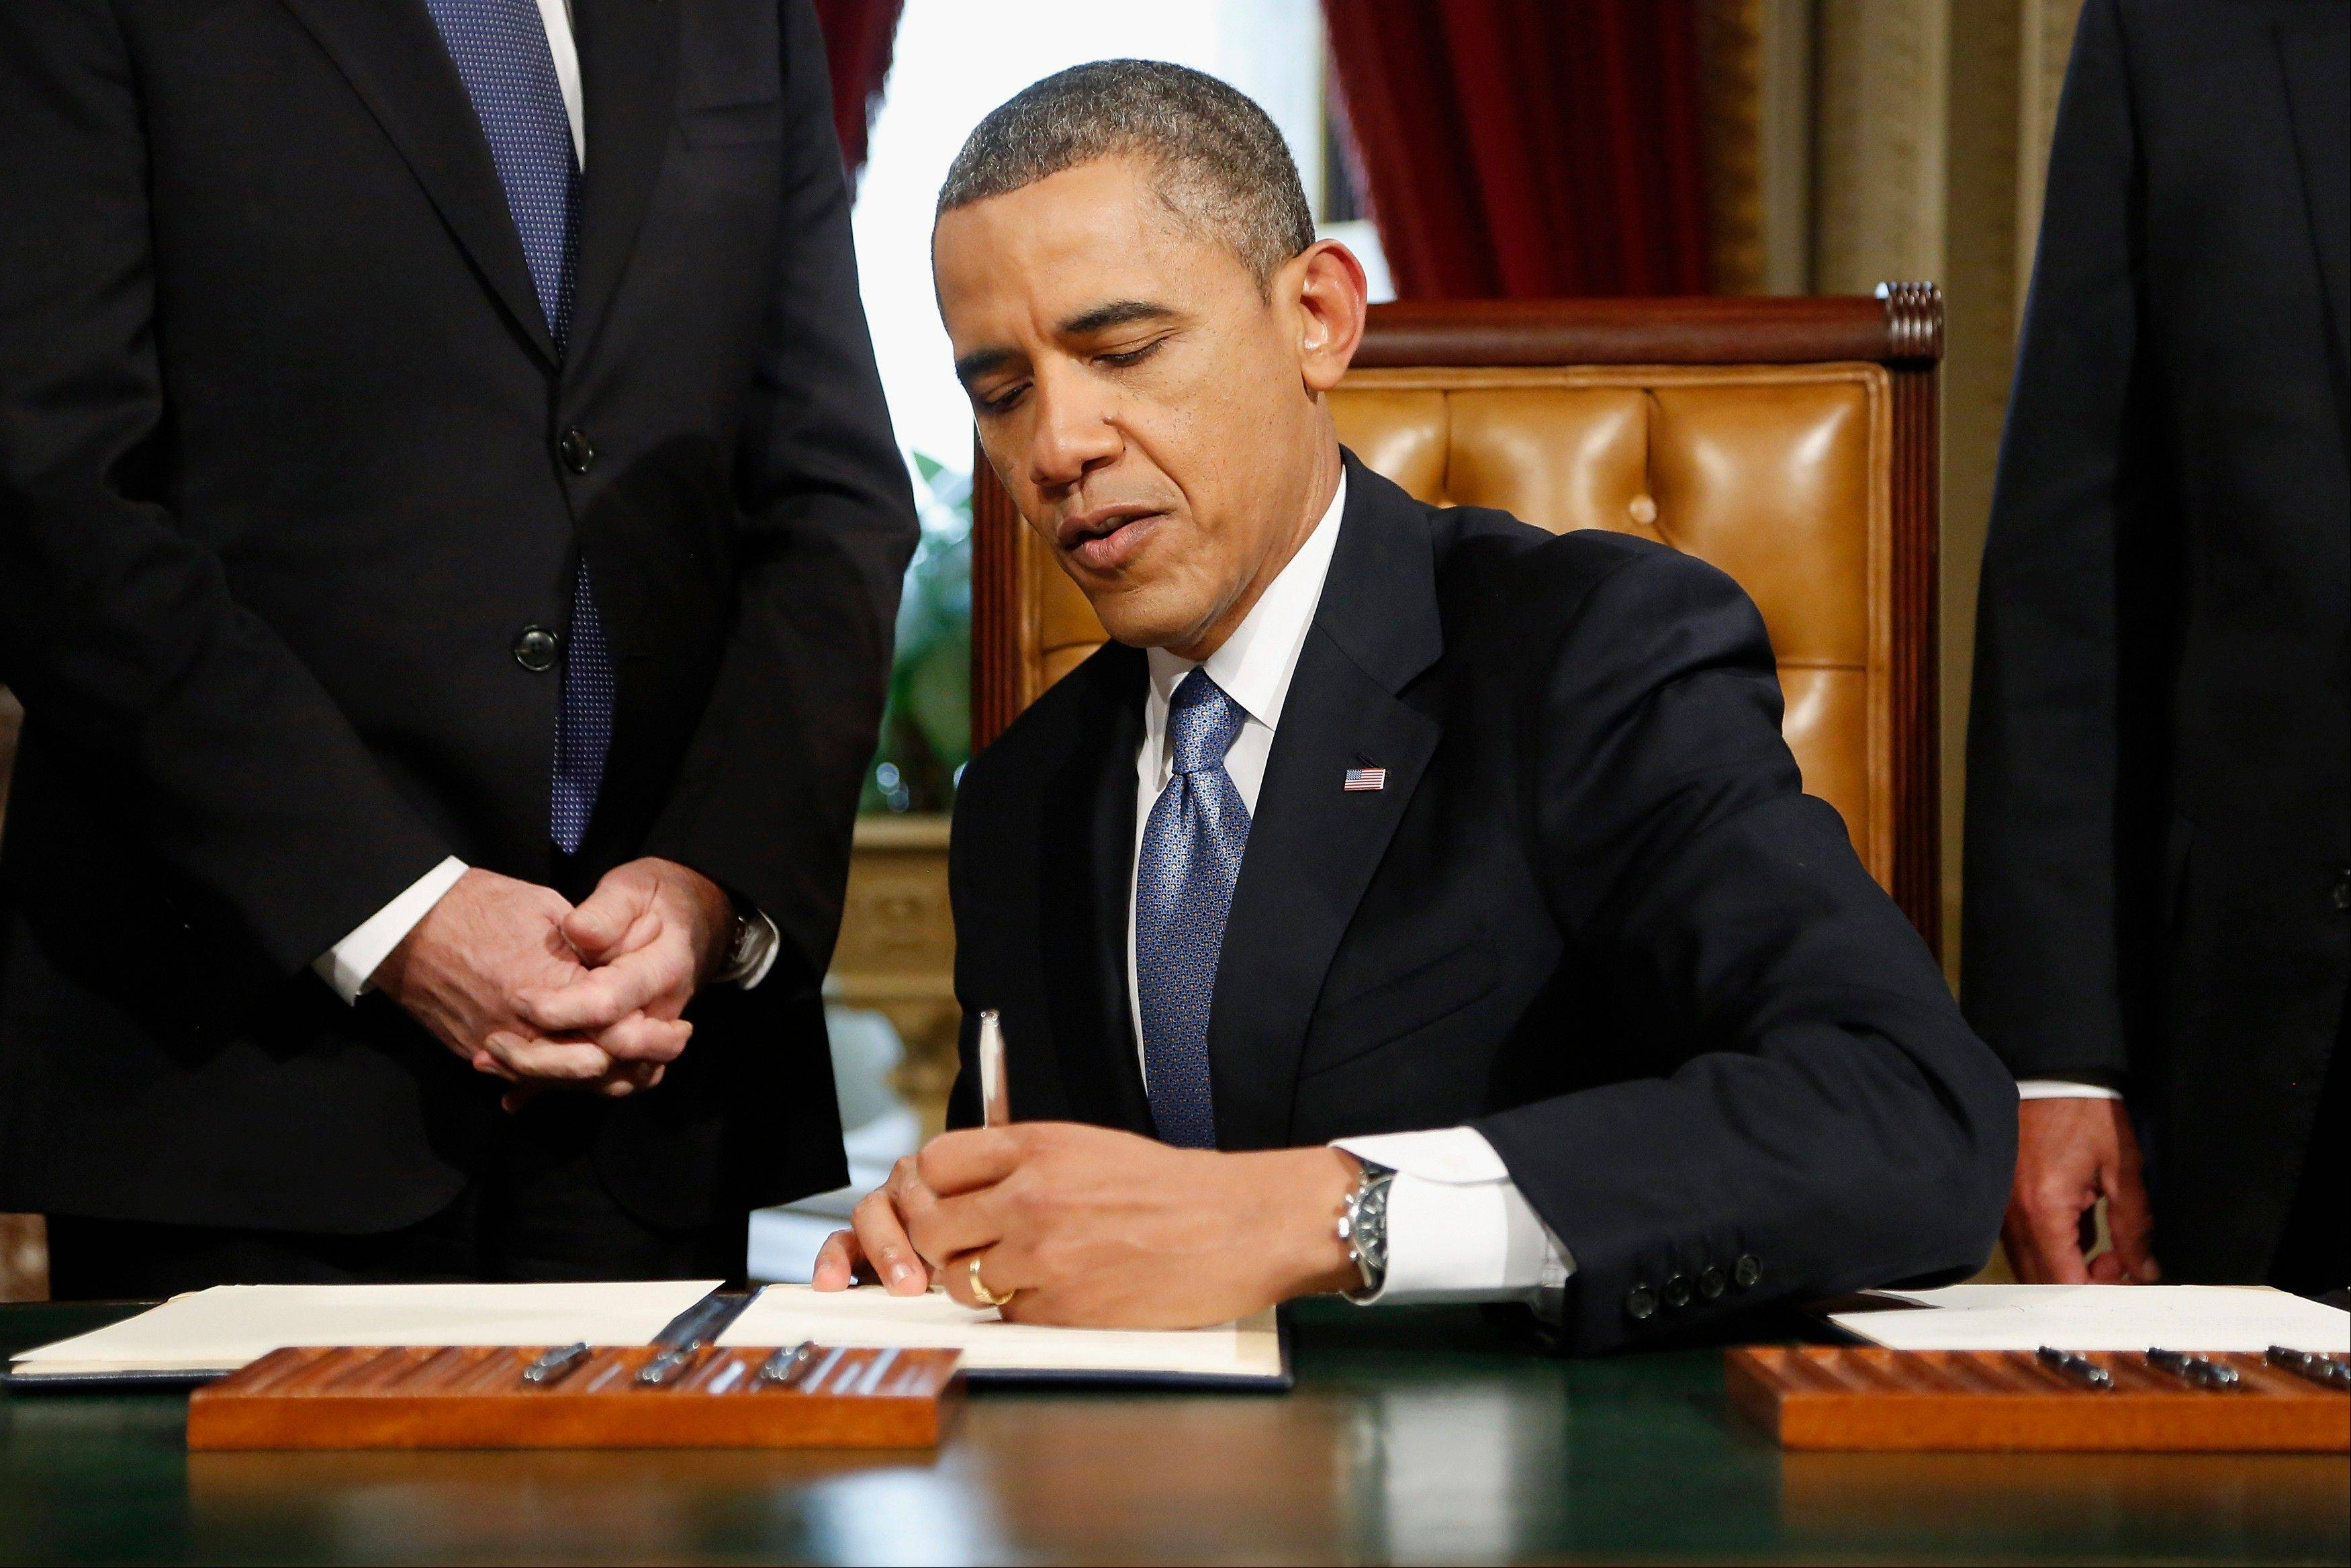 President Barack Obama signs nominations on Capitol Hill Monday for Sen. John Kerry to be his nominee for secretary of State; White House Chief of Staff Jacob Lew to be his nominee for Treasury secretary, former Sen. Chuck Hagel to be his nominee for Defense secretary and John Brennan to be his nominee to be CIA director, after his ceremonial swearing-in ceremony.